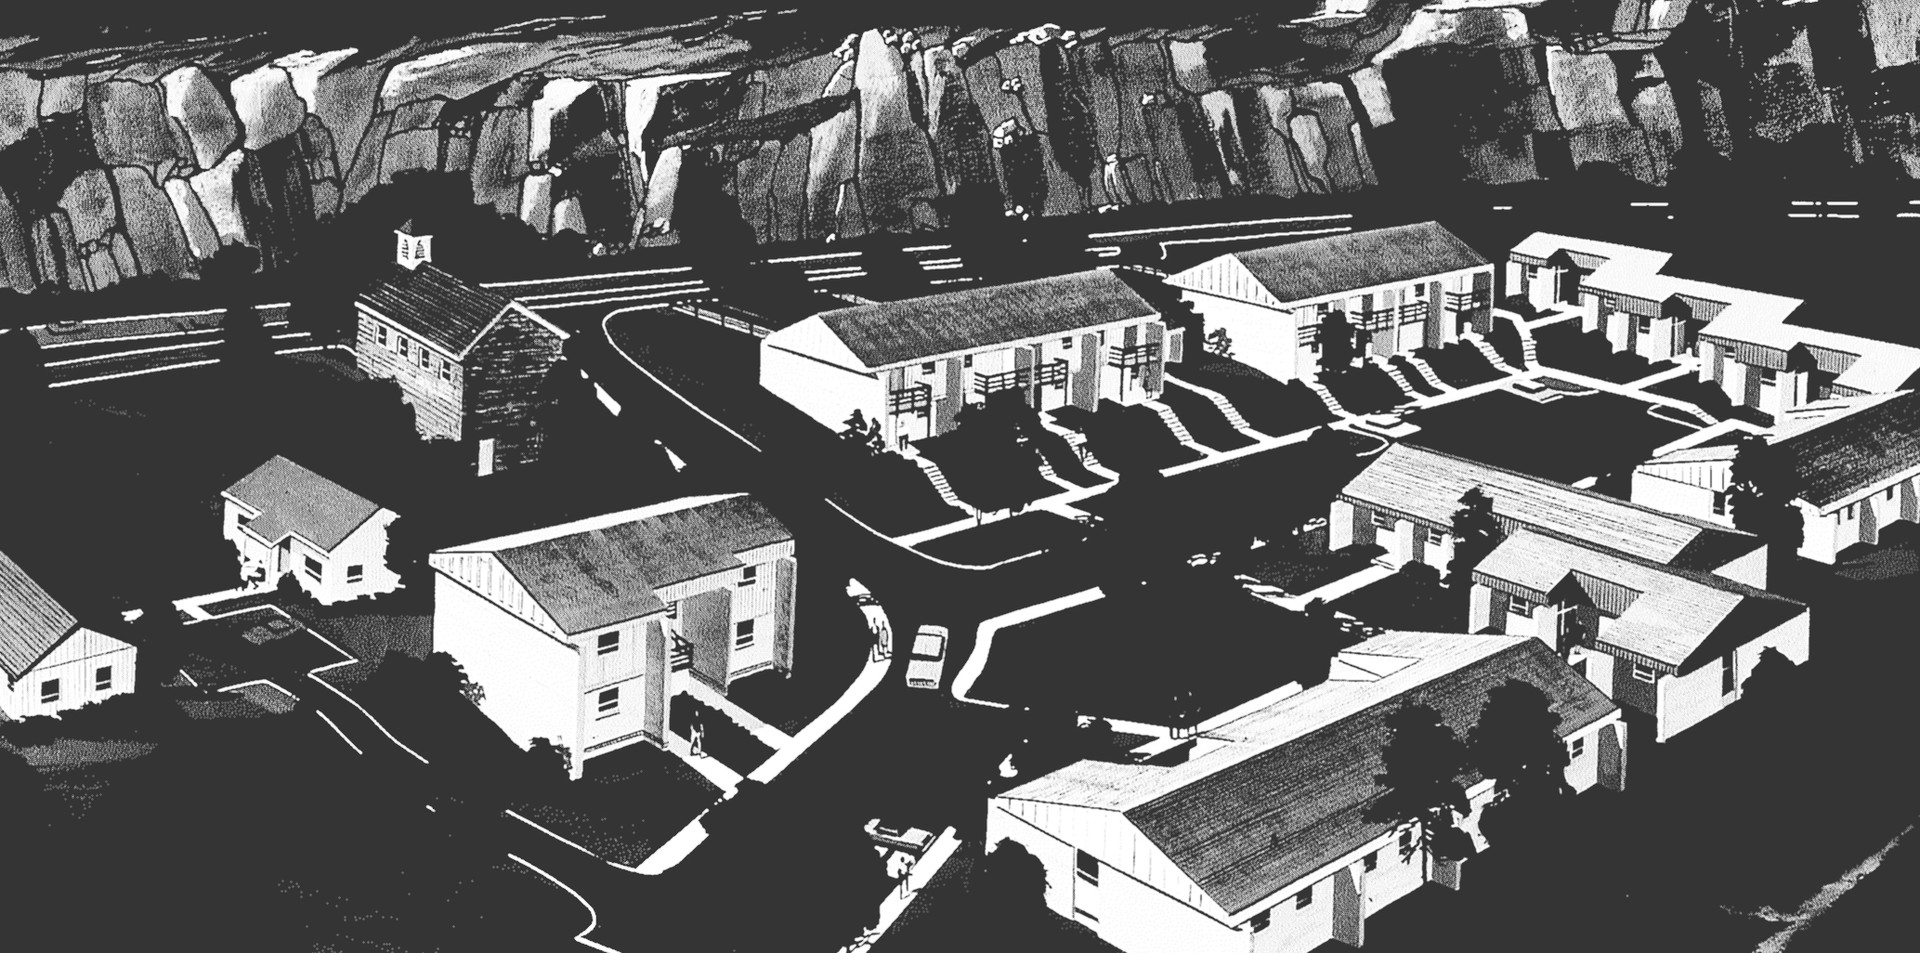 Working in eastern Kentucky, Cram led efforts to build 100 units of affordable prototype housing. (AIA Archives)